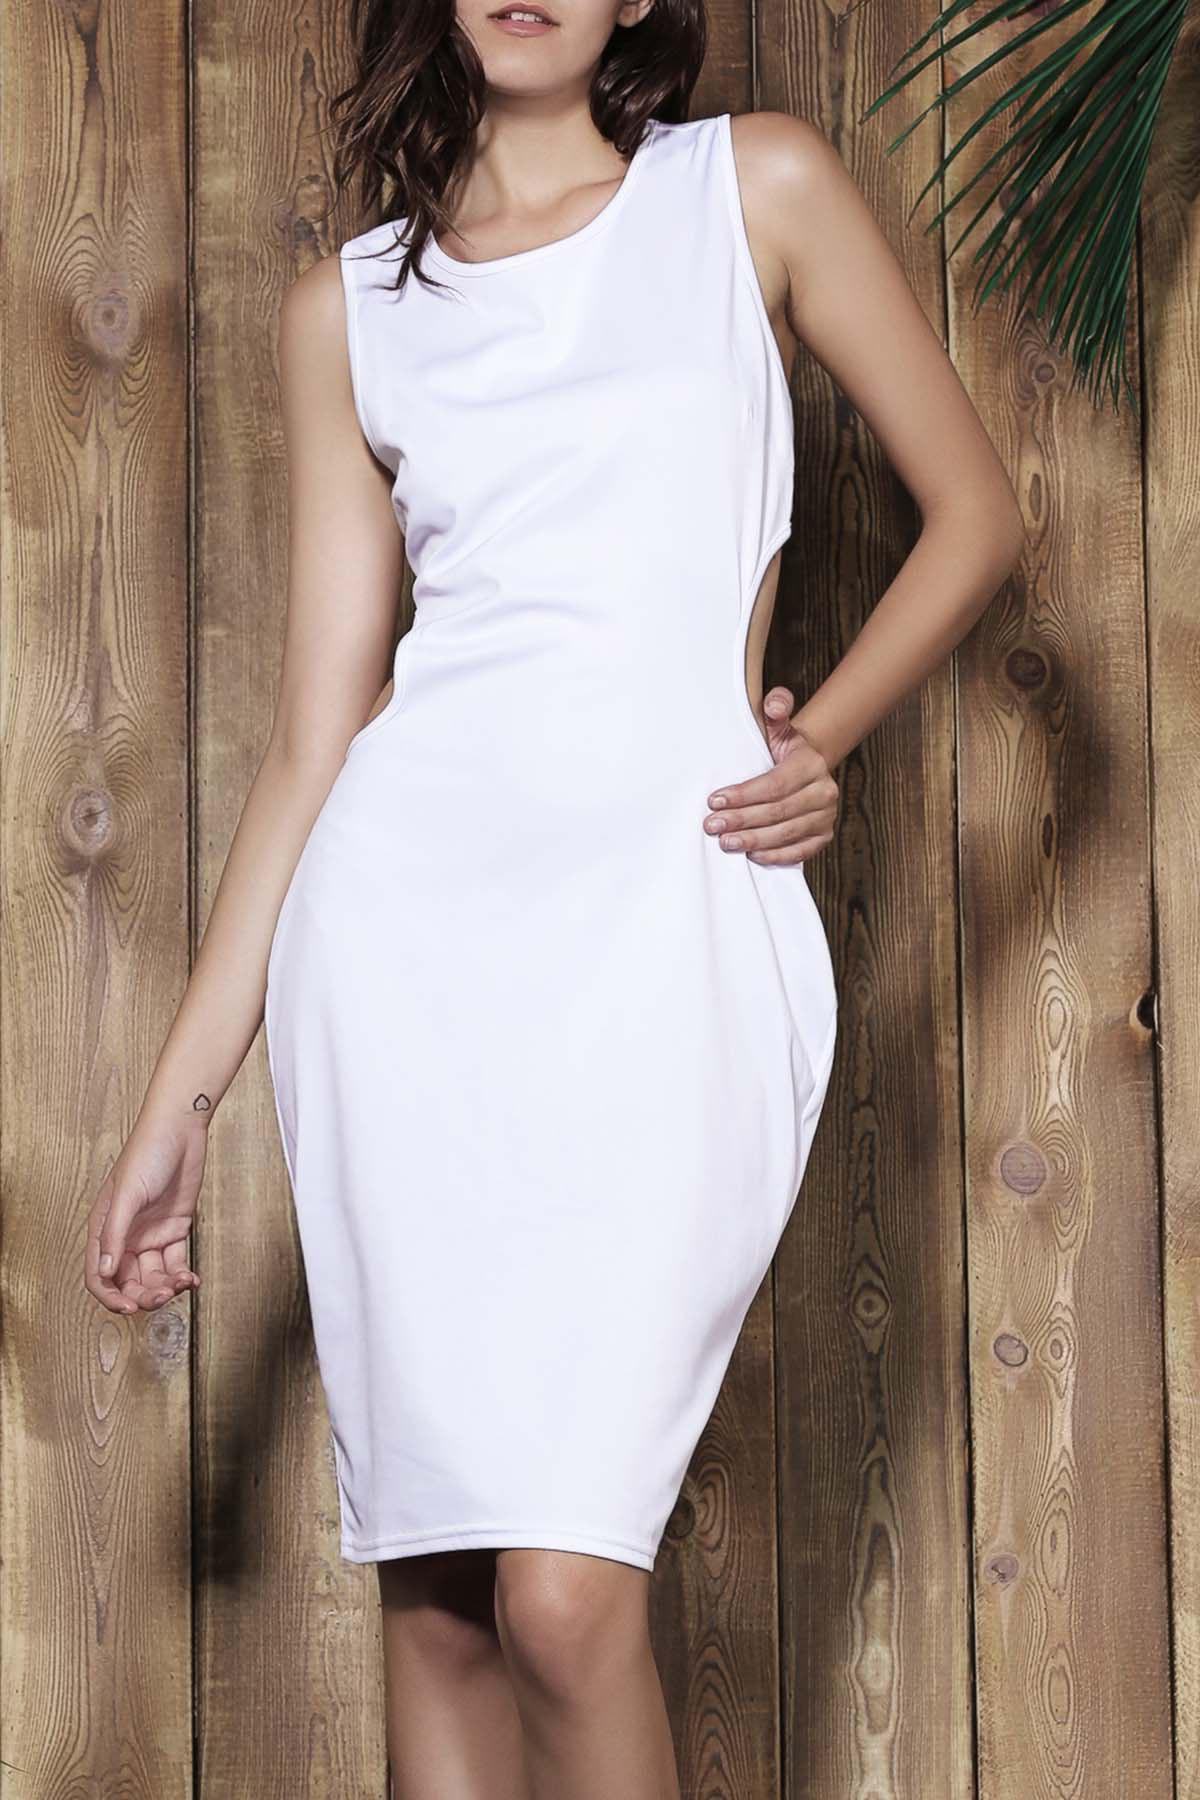 Alluring Scoop Neck Sleeveless Cut Out Solid Color Women's Dress 159400401